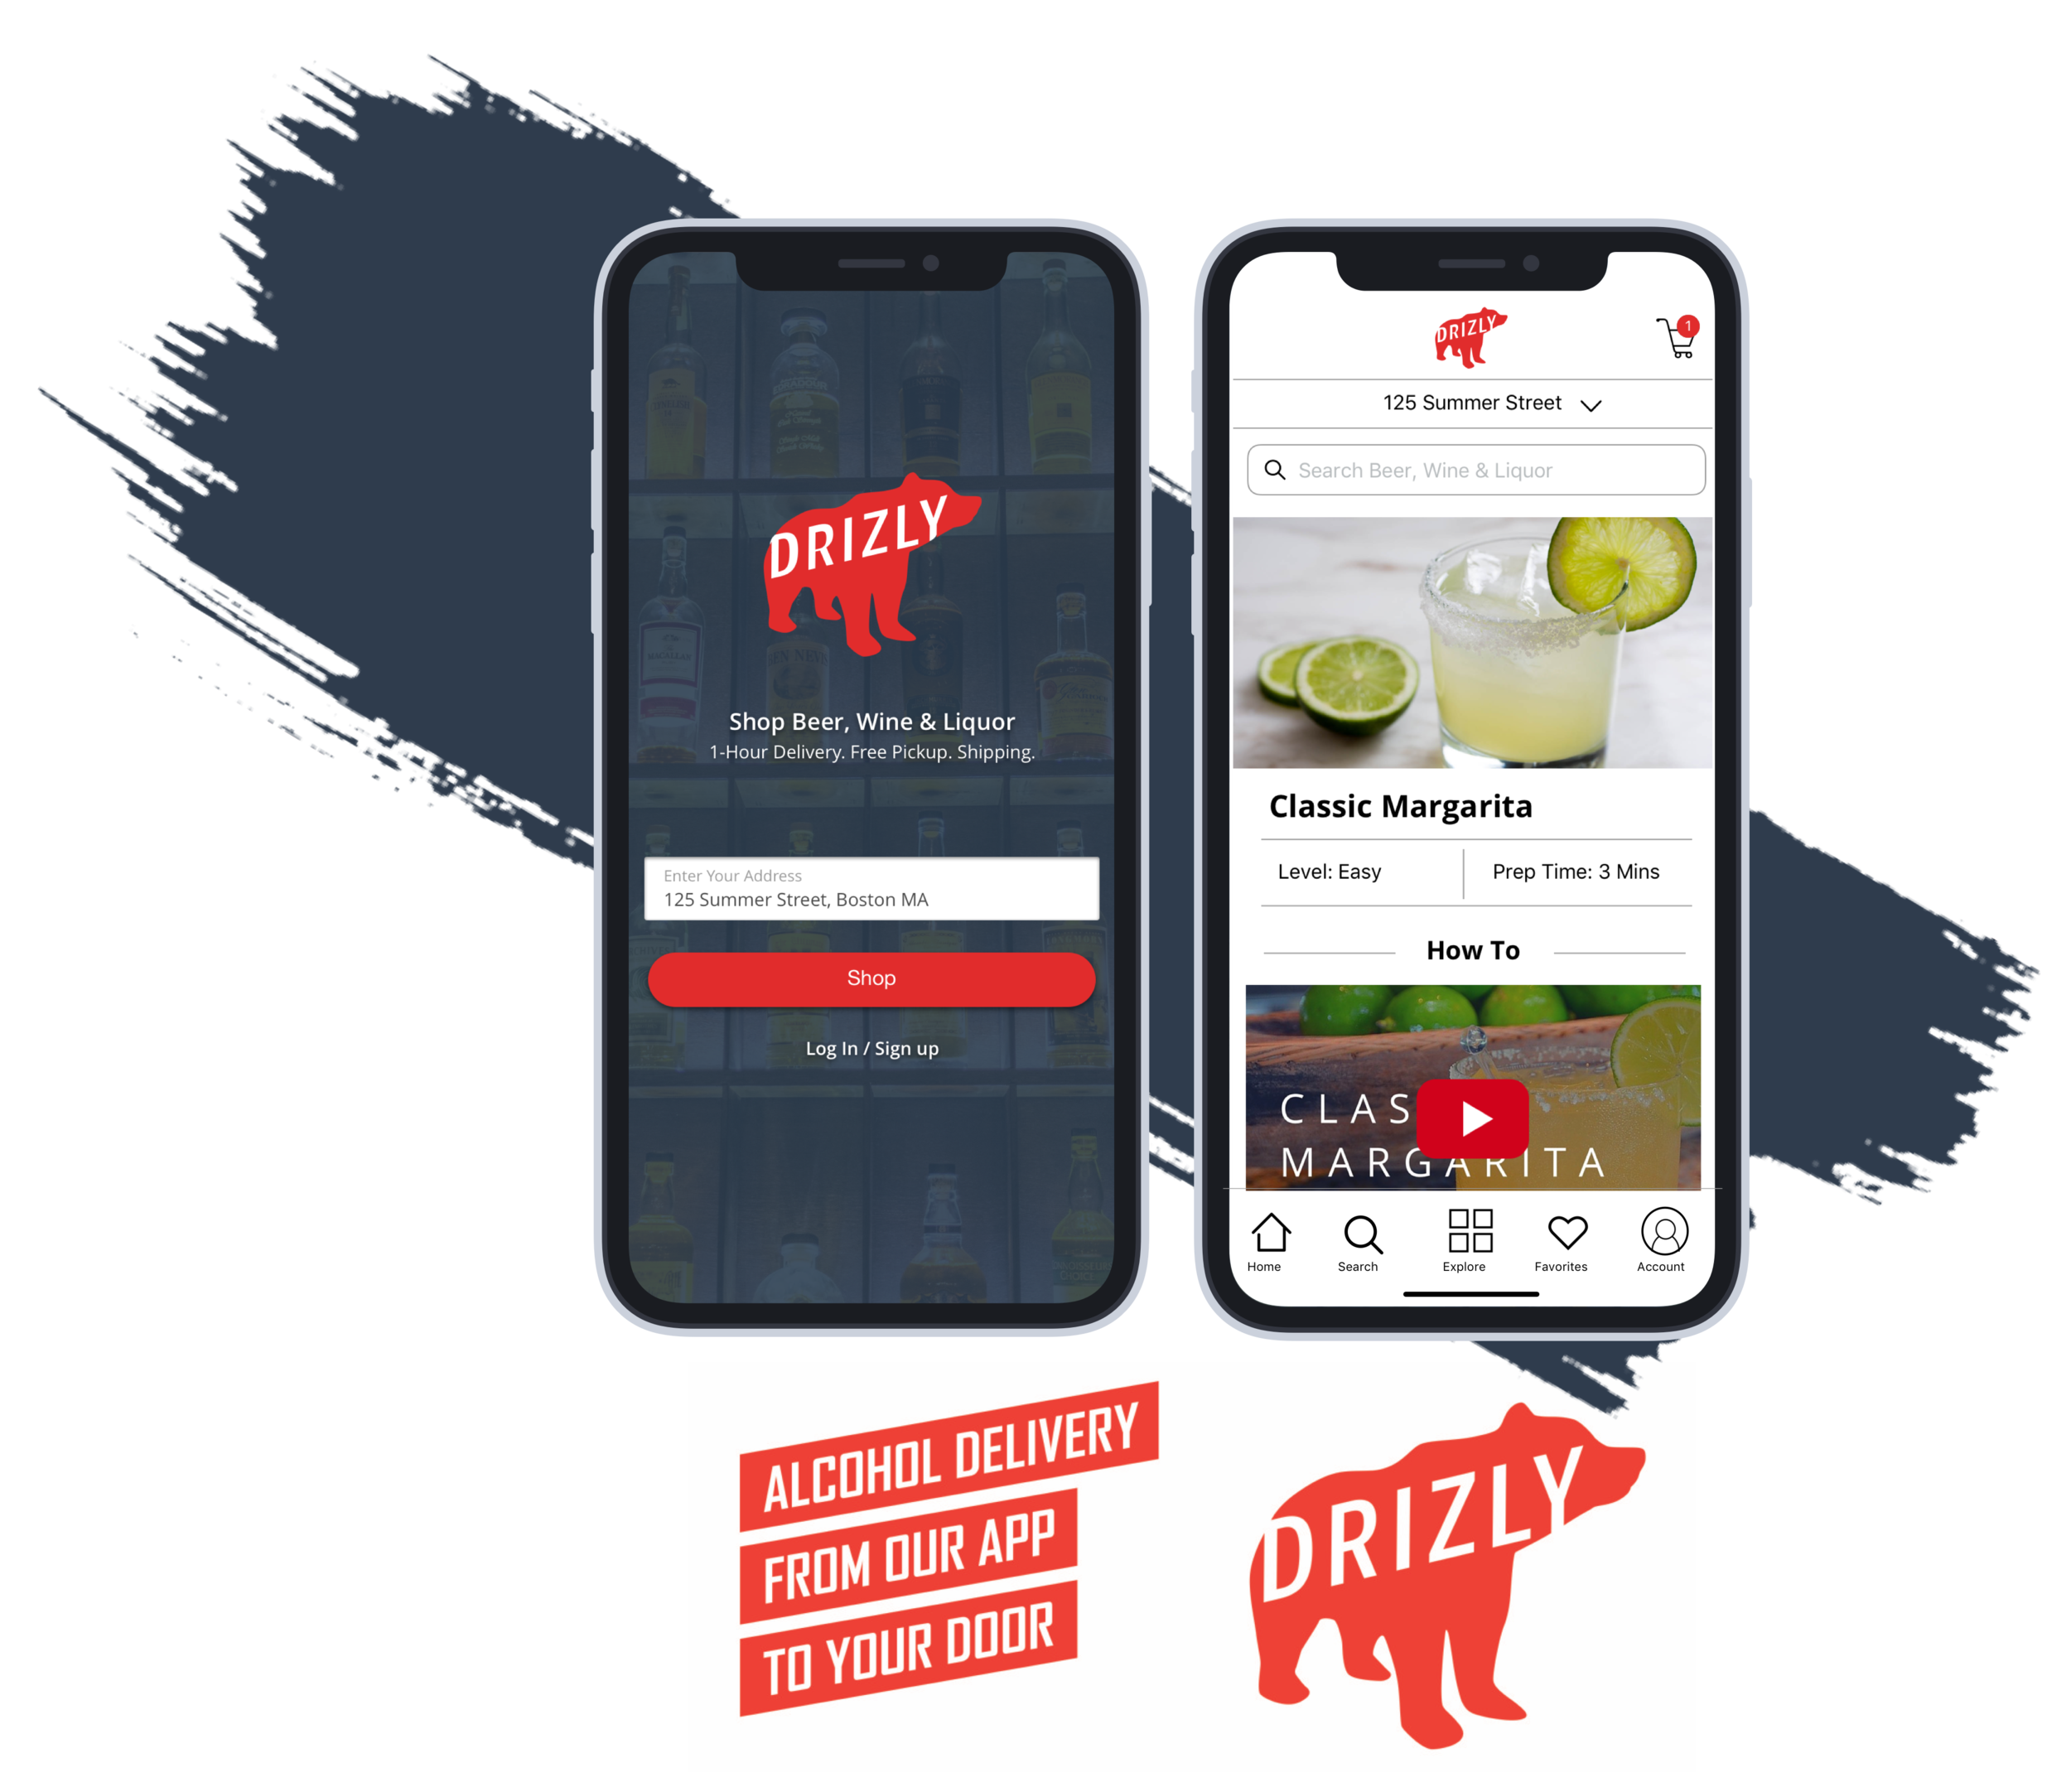 Drizly - Alcohol Delivery Marketplace - Reconstructed Drizly's recipes pages from web to mobile app. Focused on getting mobile web users to convert to using the mobile app for a full personalized experience and to increase sales conversions.